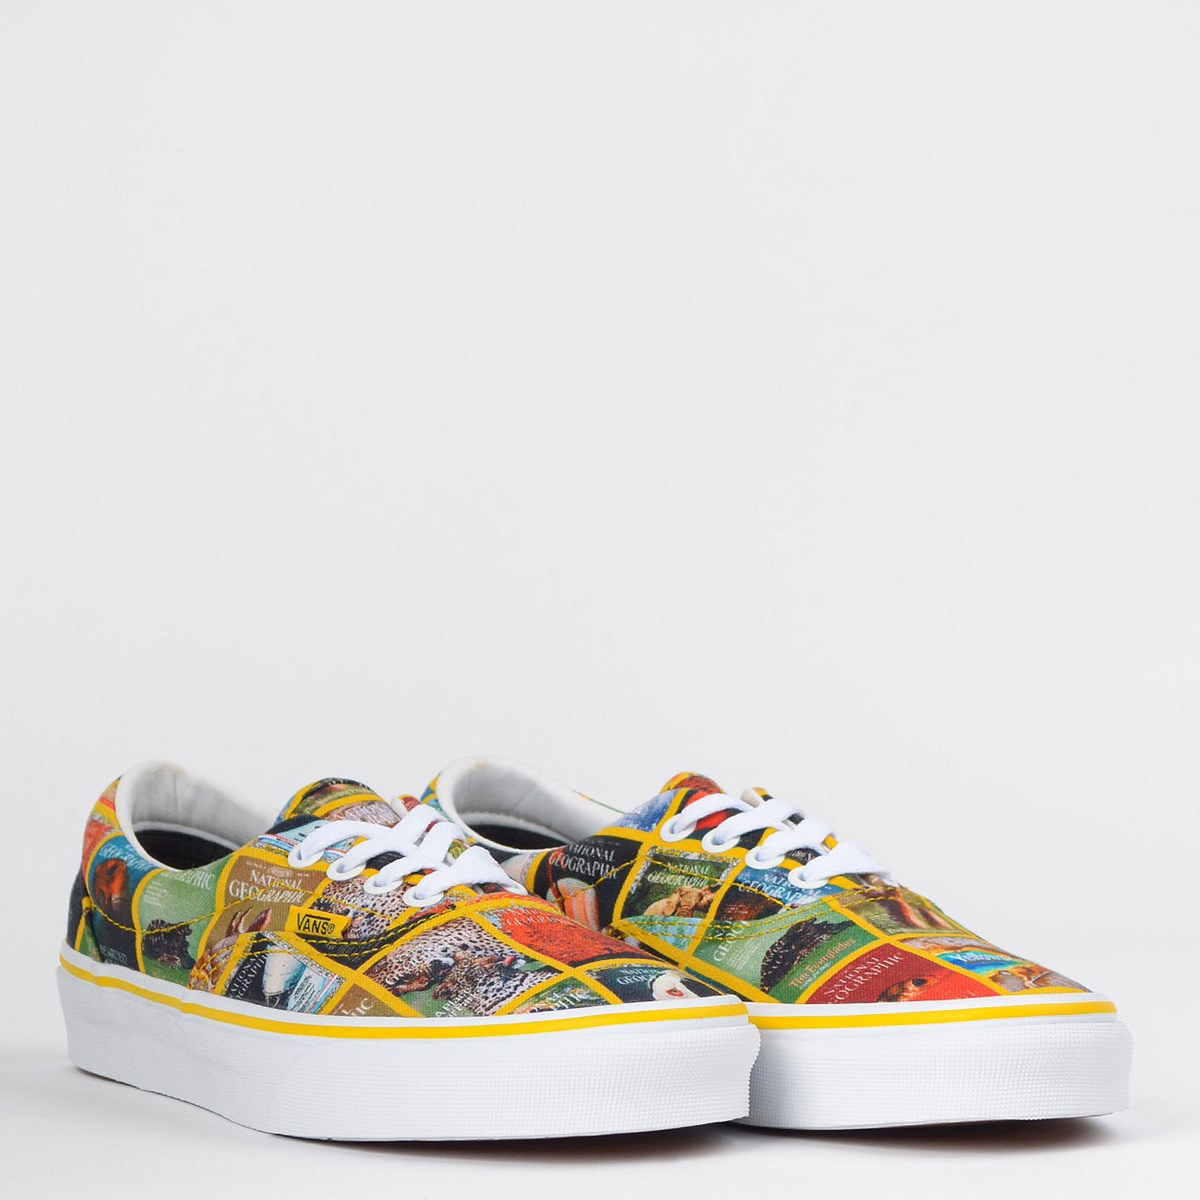 Tênis Vans Era National Geographic Multi Covers VN0A4U39WJZ